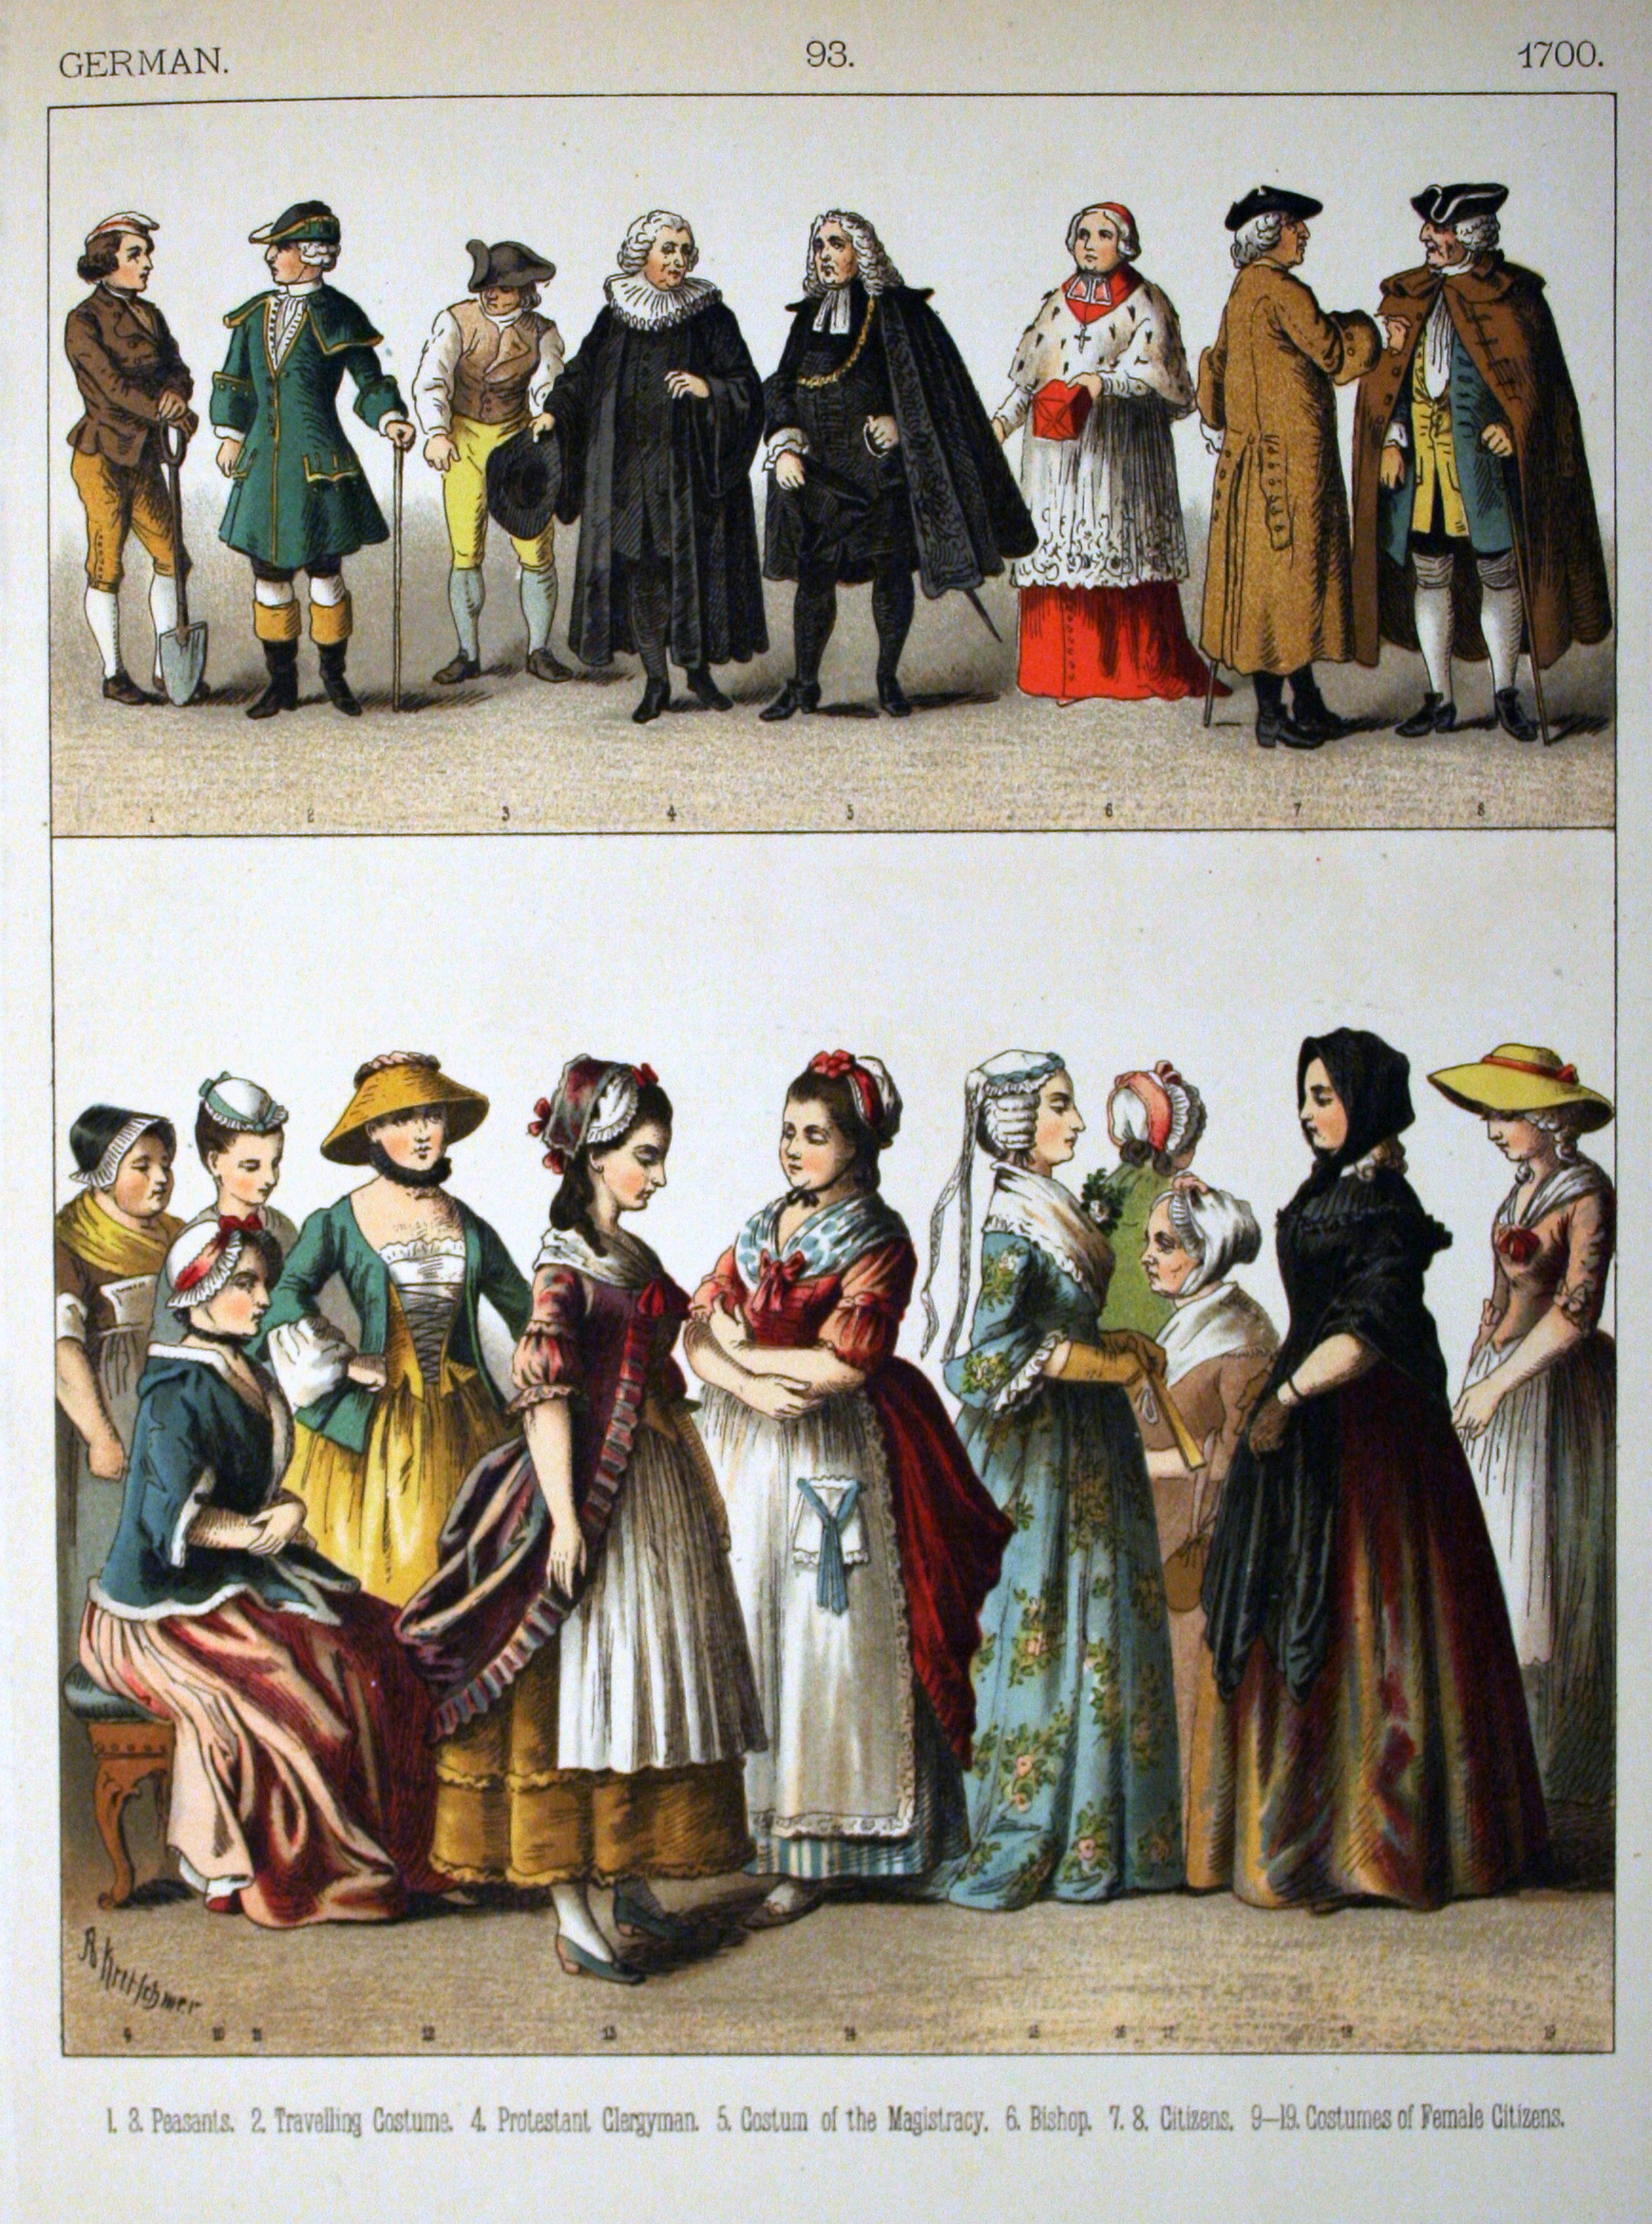 File:1700, German. - 093 - Costumes of All Nations (1882)